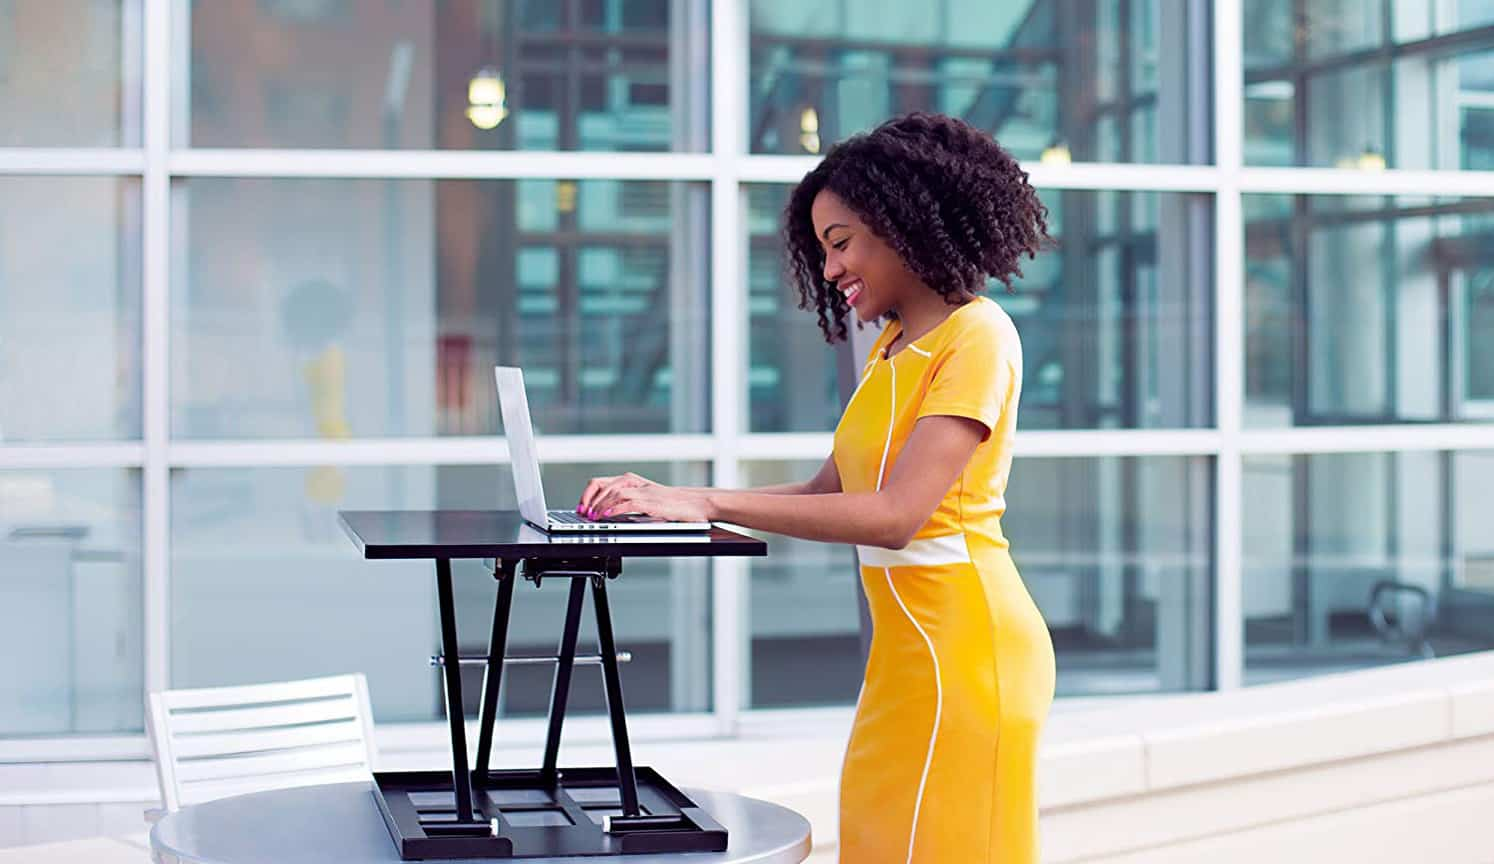 Adjustable Standing Desk as the first related product of Adjustable Computer Desk